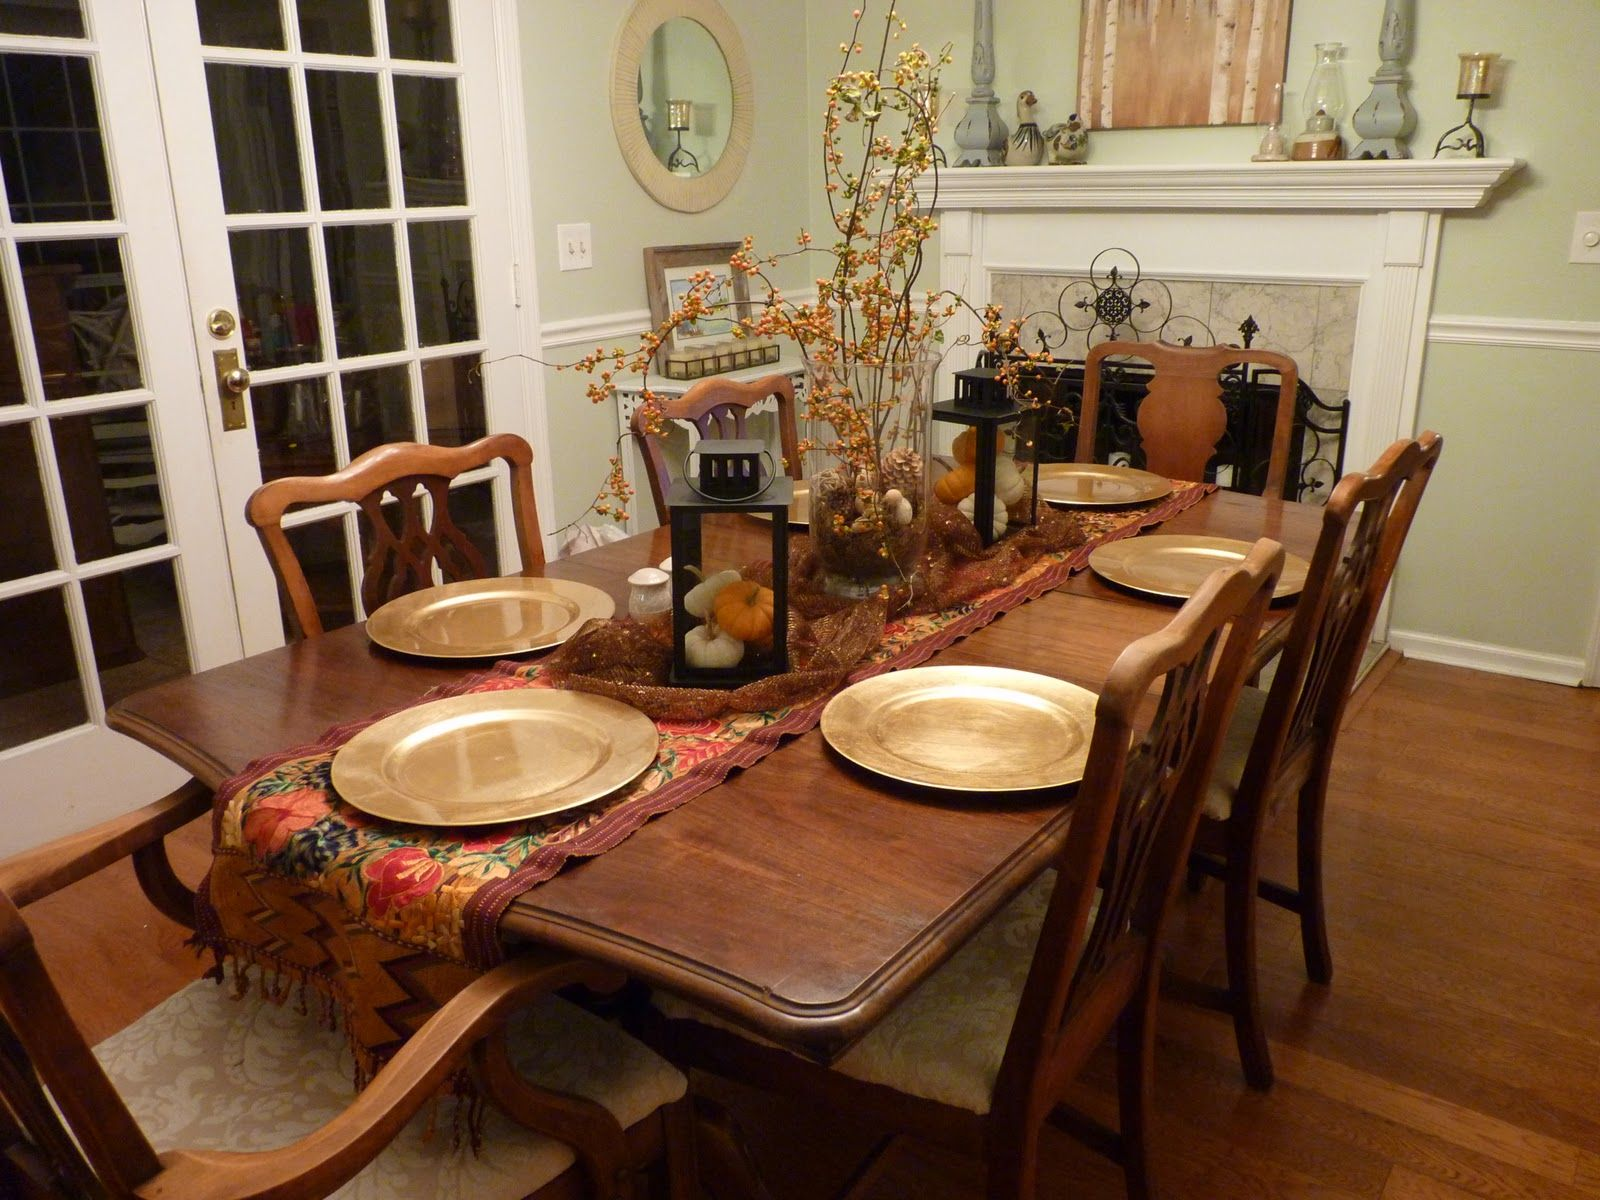 Classy Wooden Rustic Dining Table With 6 Chairs Feat Silver Plate And Floral As